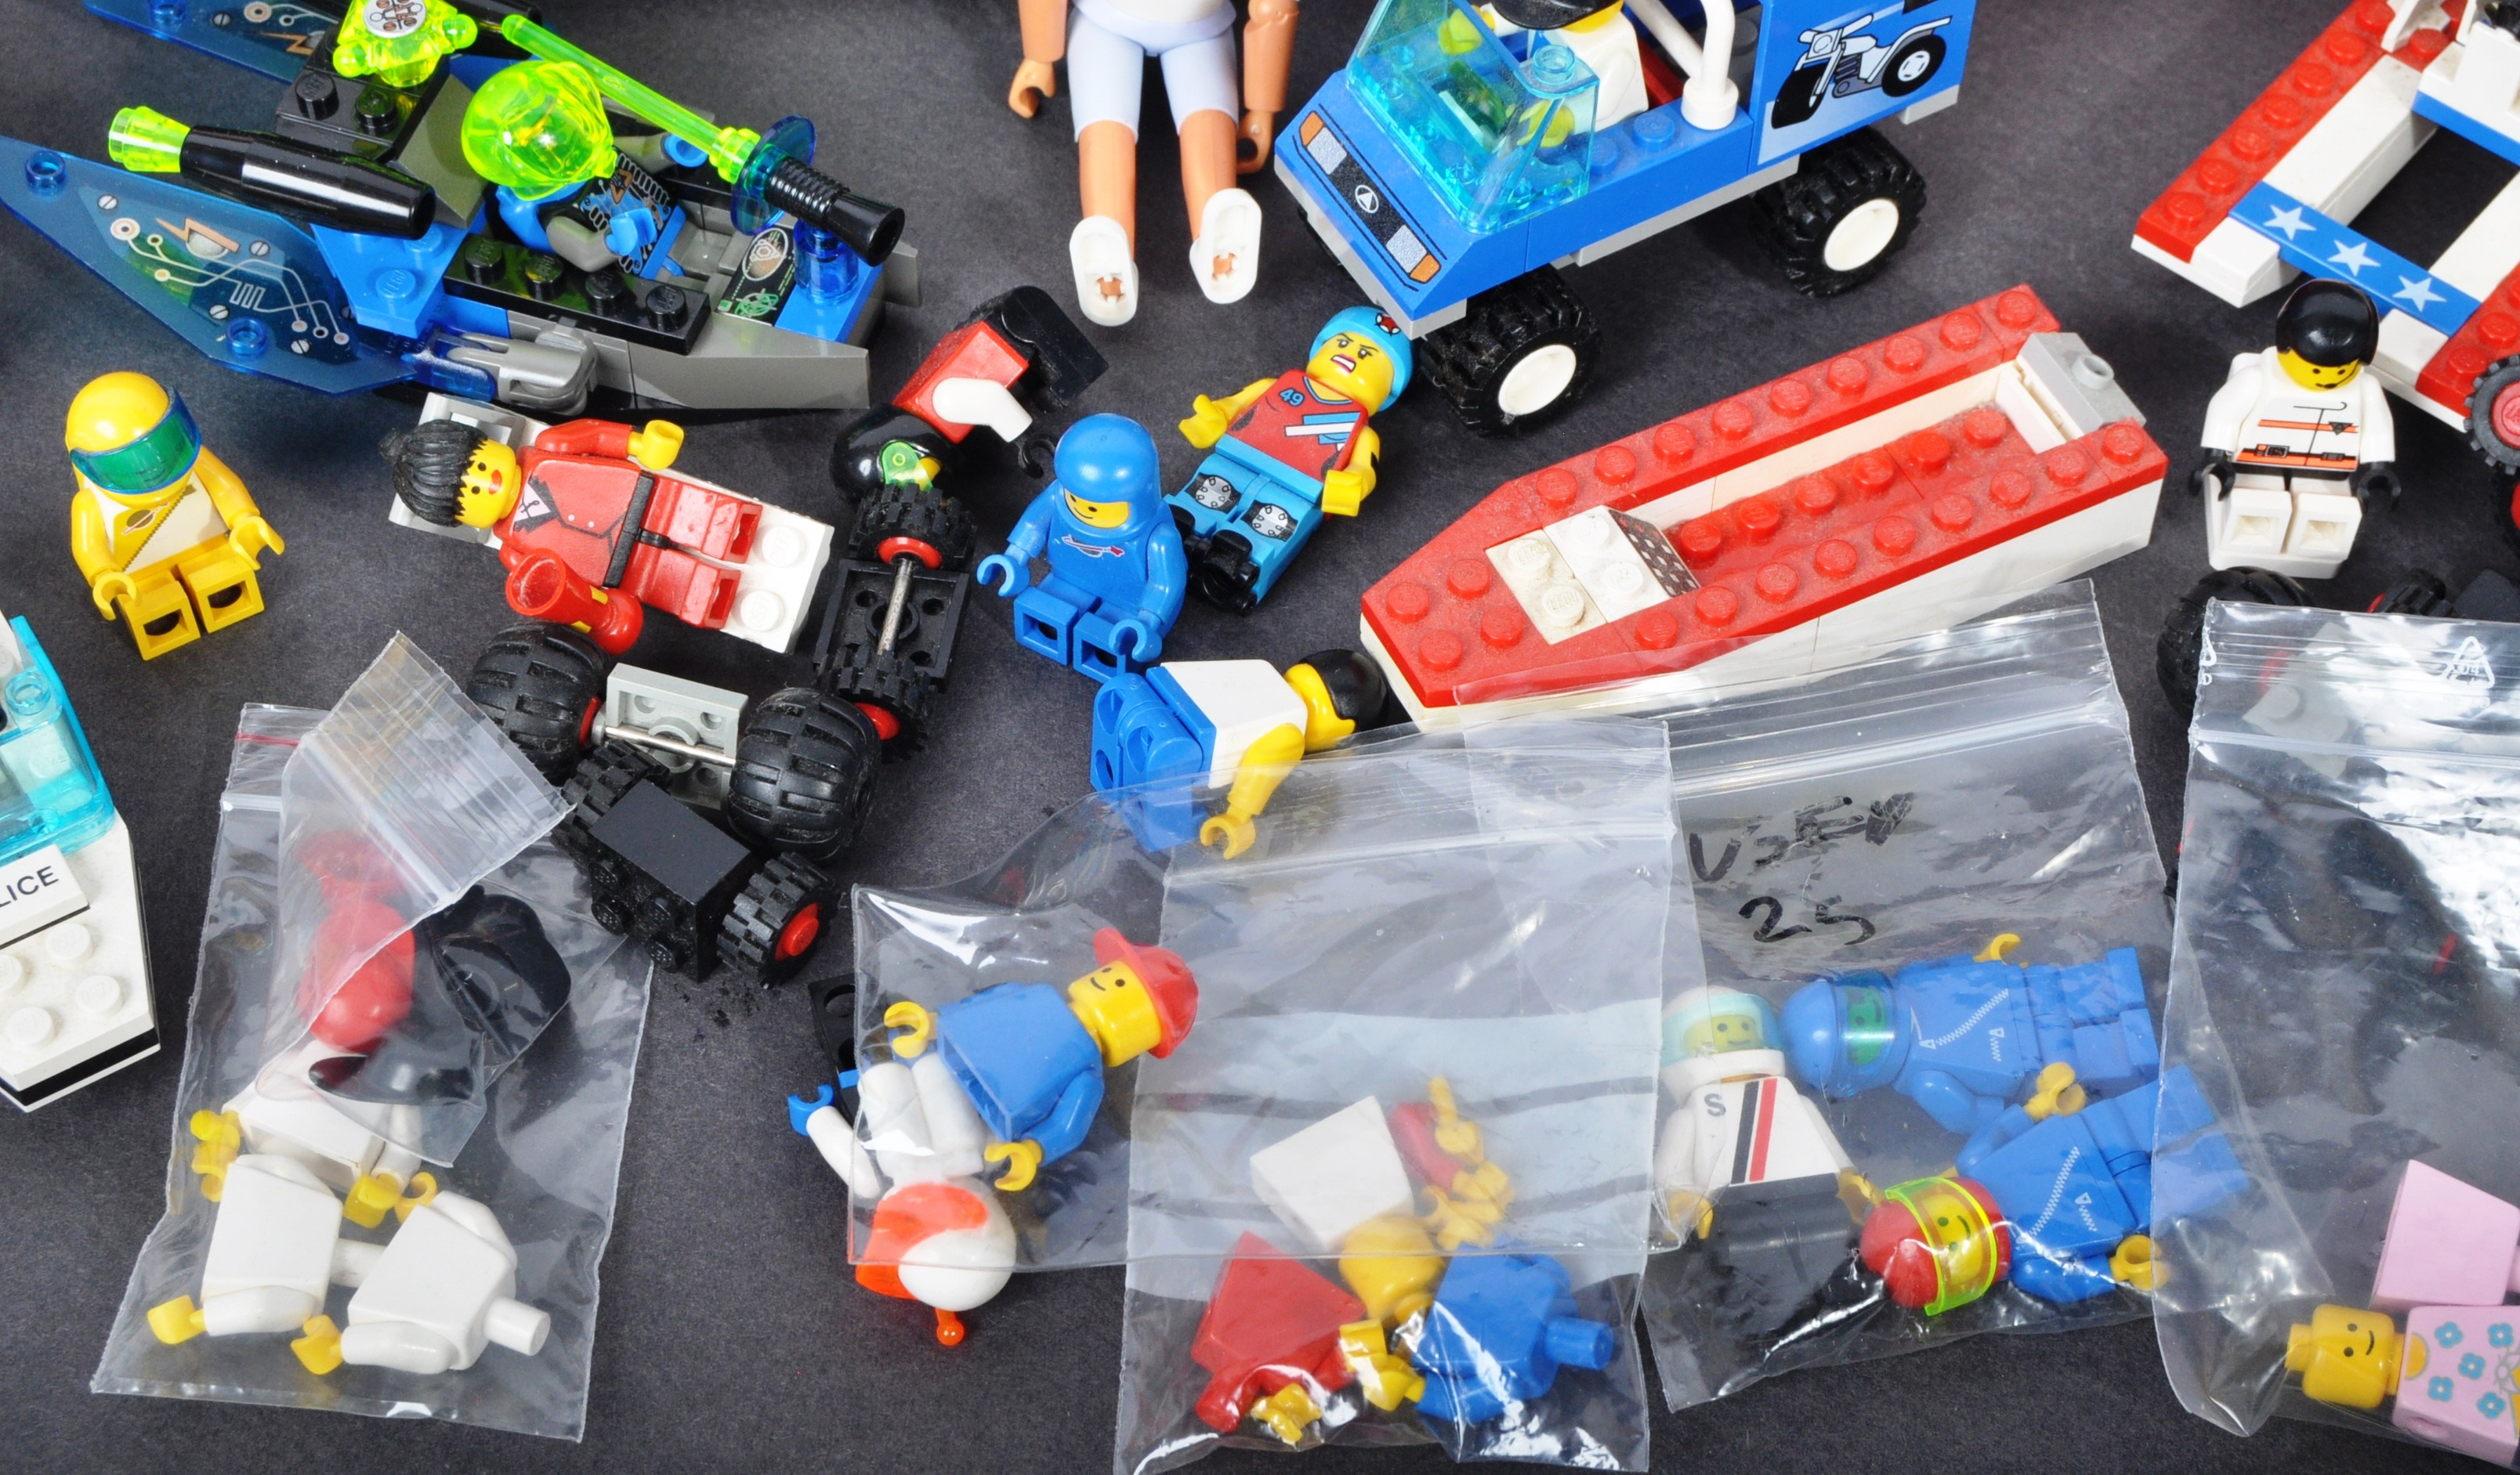 COLLECTION OF ASSORTED VINTAGE MINI LEGO SETS & MINIFIGURES - Image 8 of 10